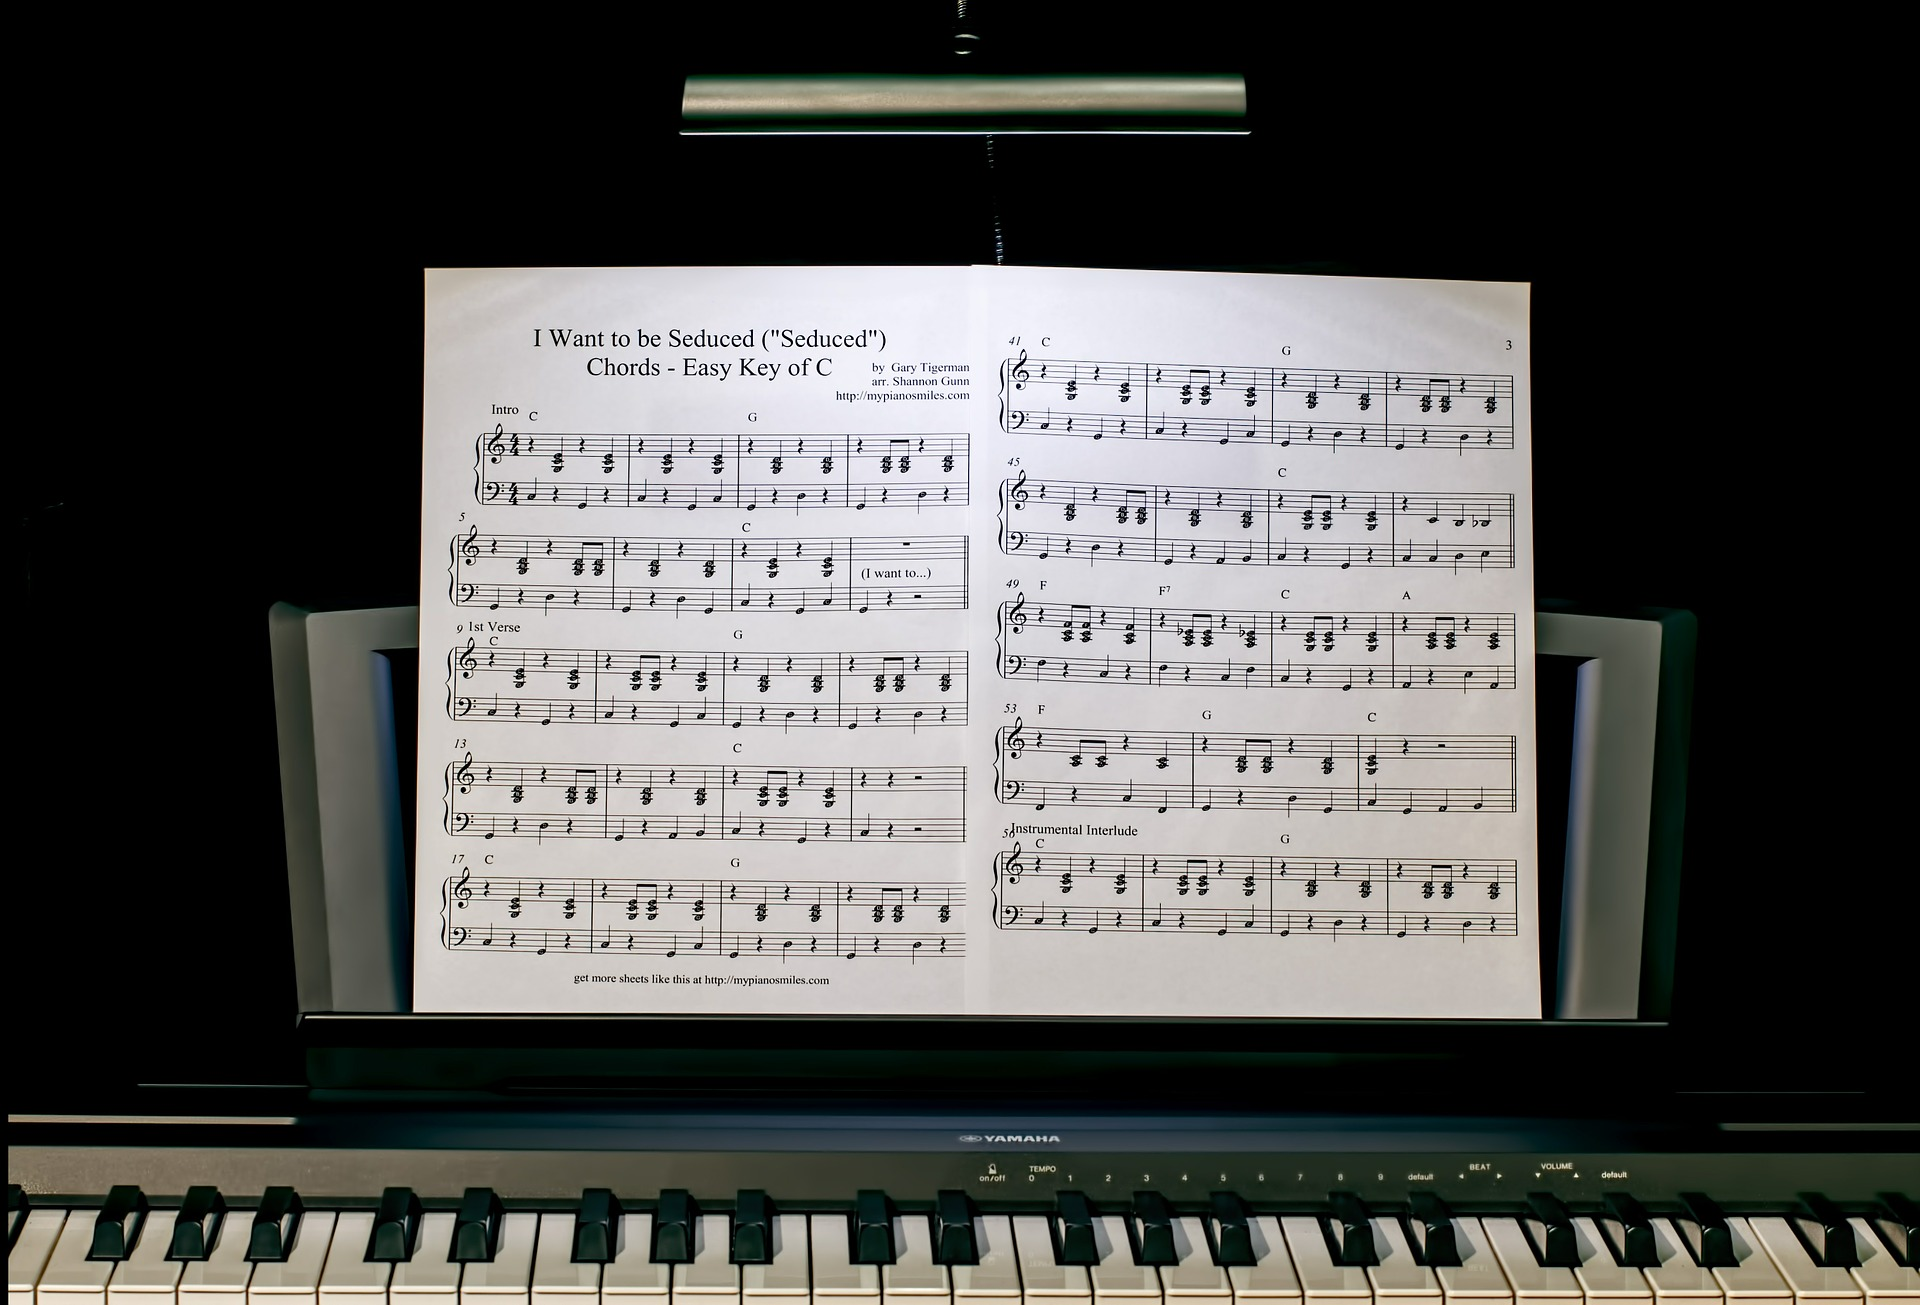 music score at a piano